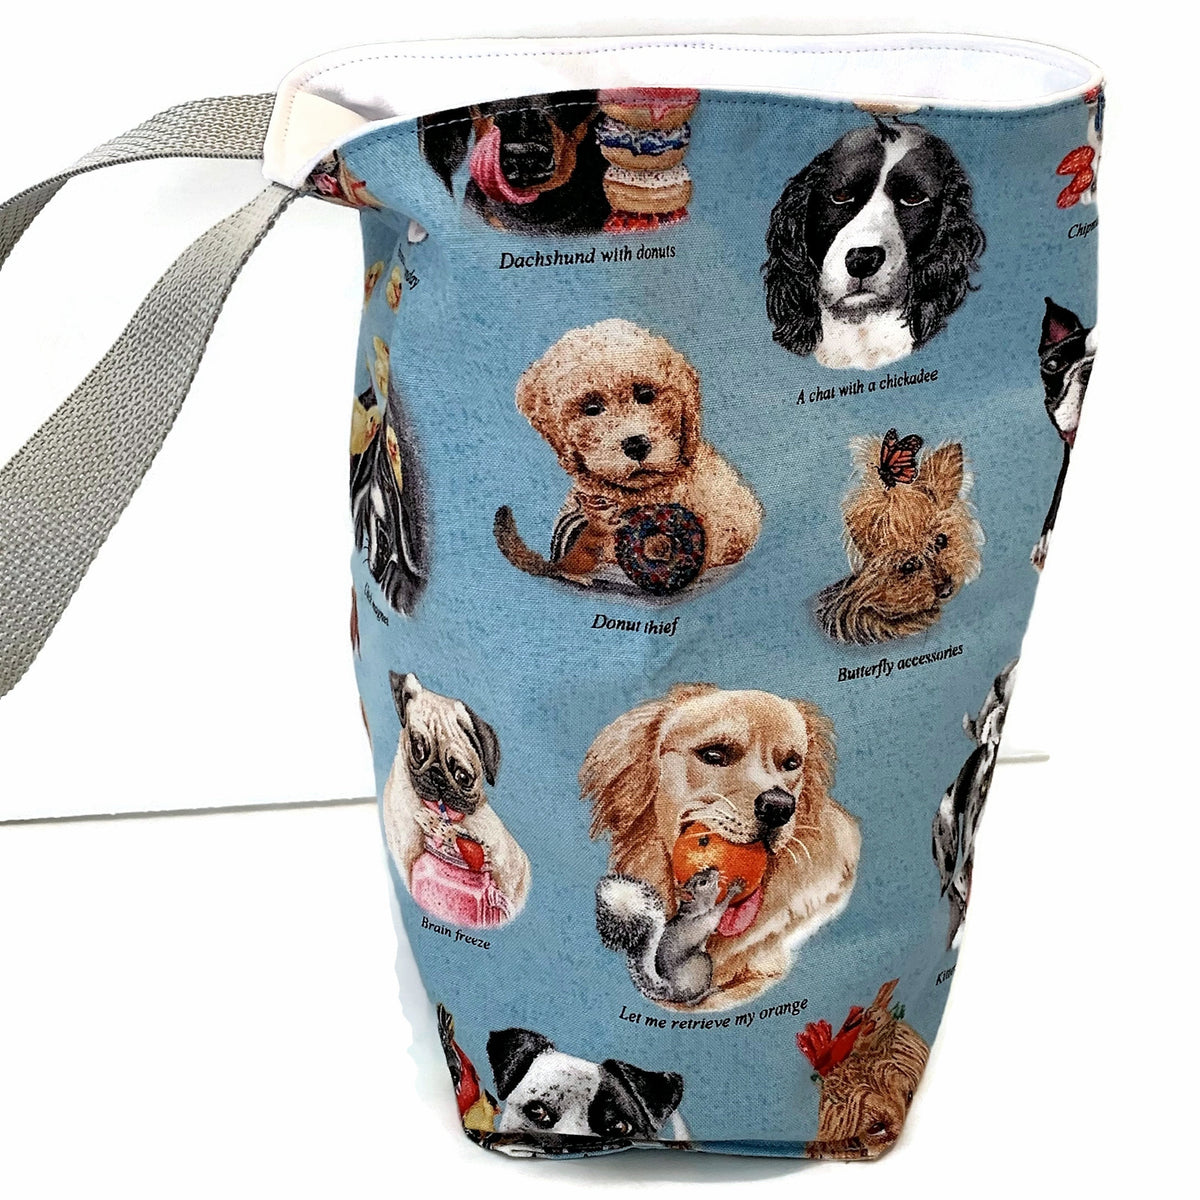 Assorted Doggies - Wipe Clean Car Trash Bag - Accessory for Car - Soft Bag